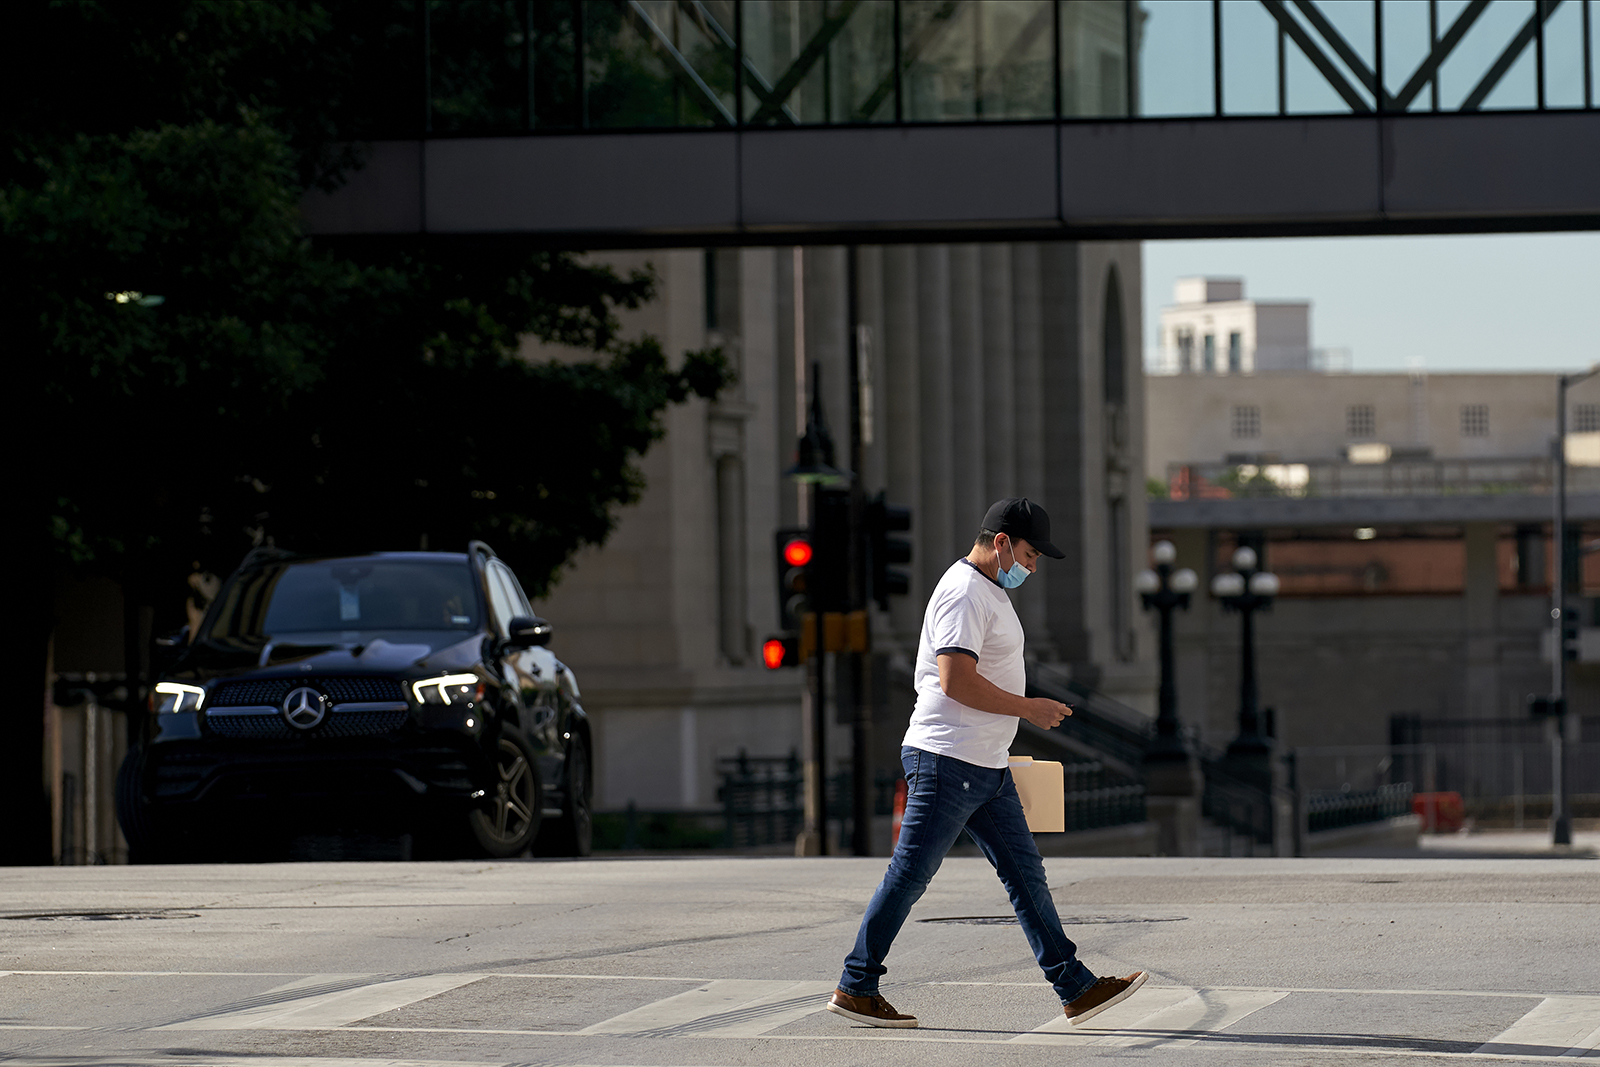 A pedestrian wearing a protective mask walks in downtown Dallas, Texas on Wednesday, May 27.